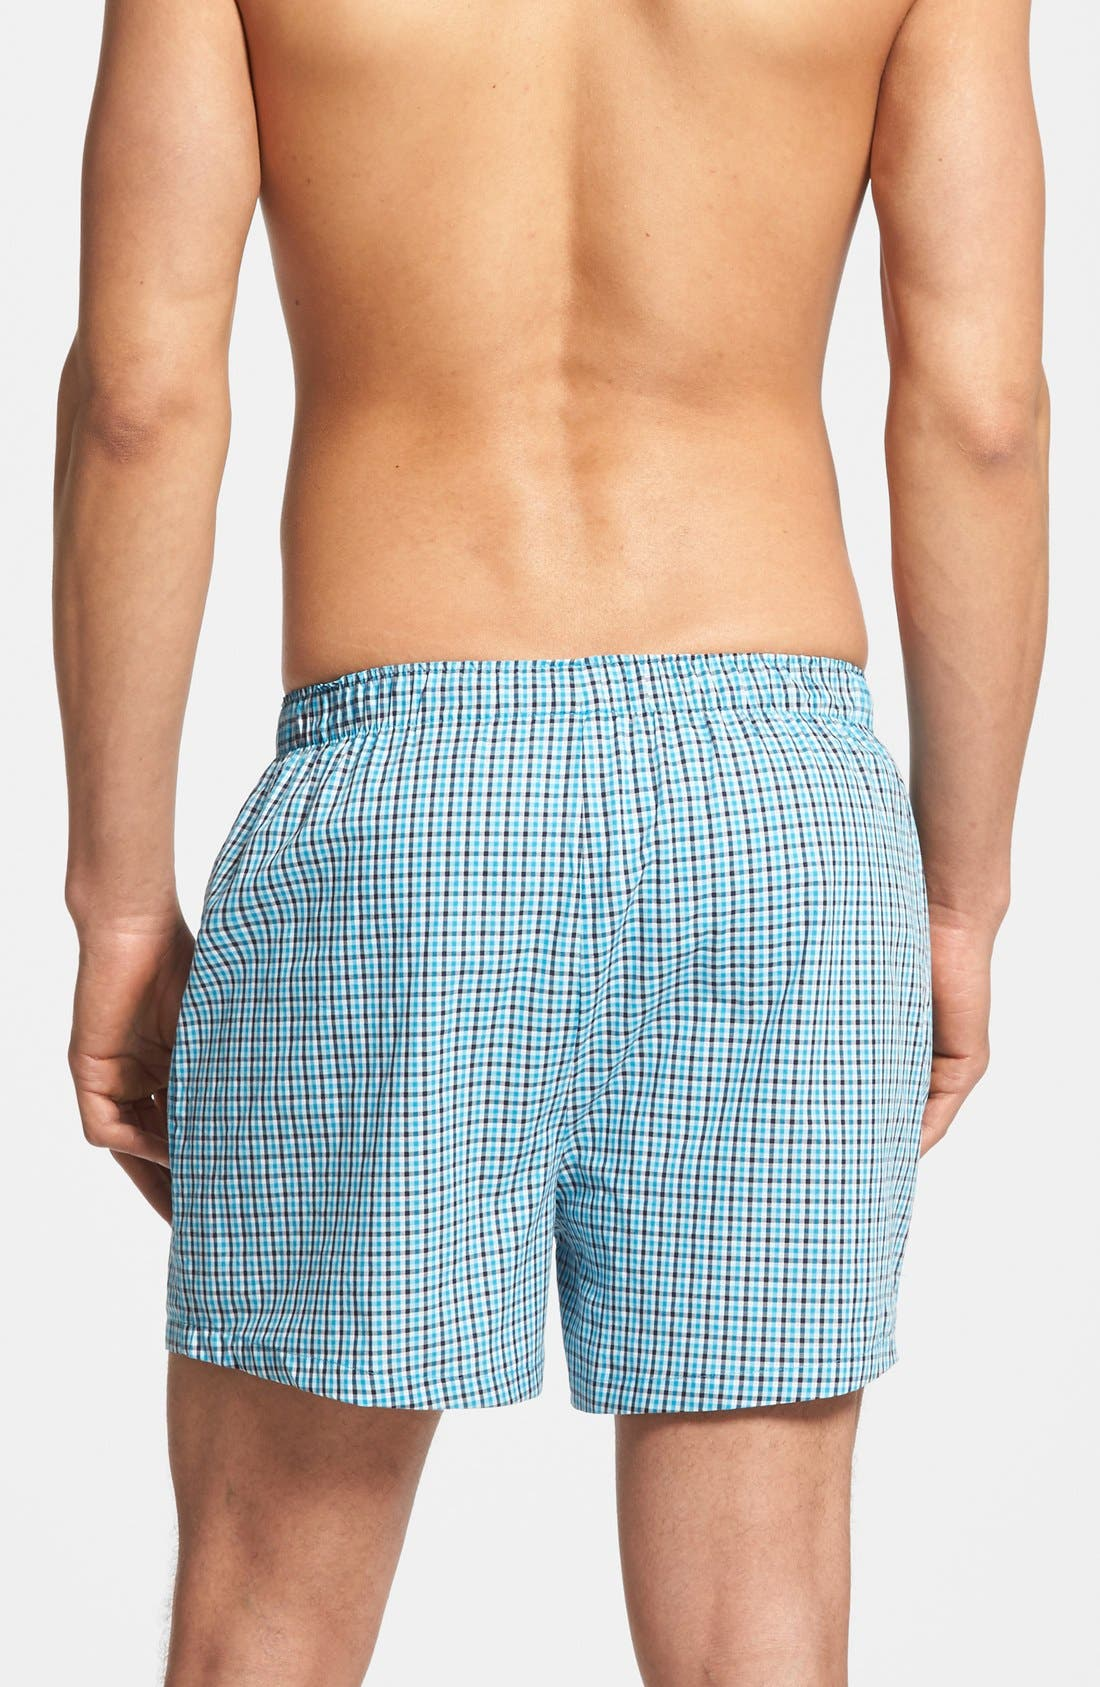 Alternate Image 2  - Michael Kors Cotton Boxers (Assorted 2-Pack)